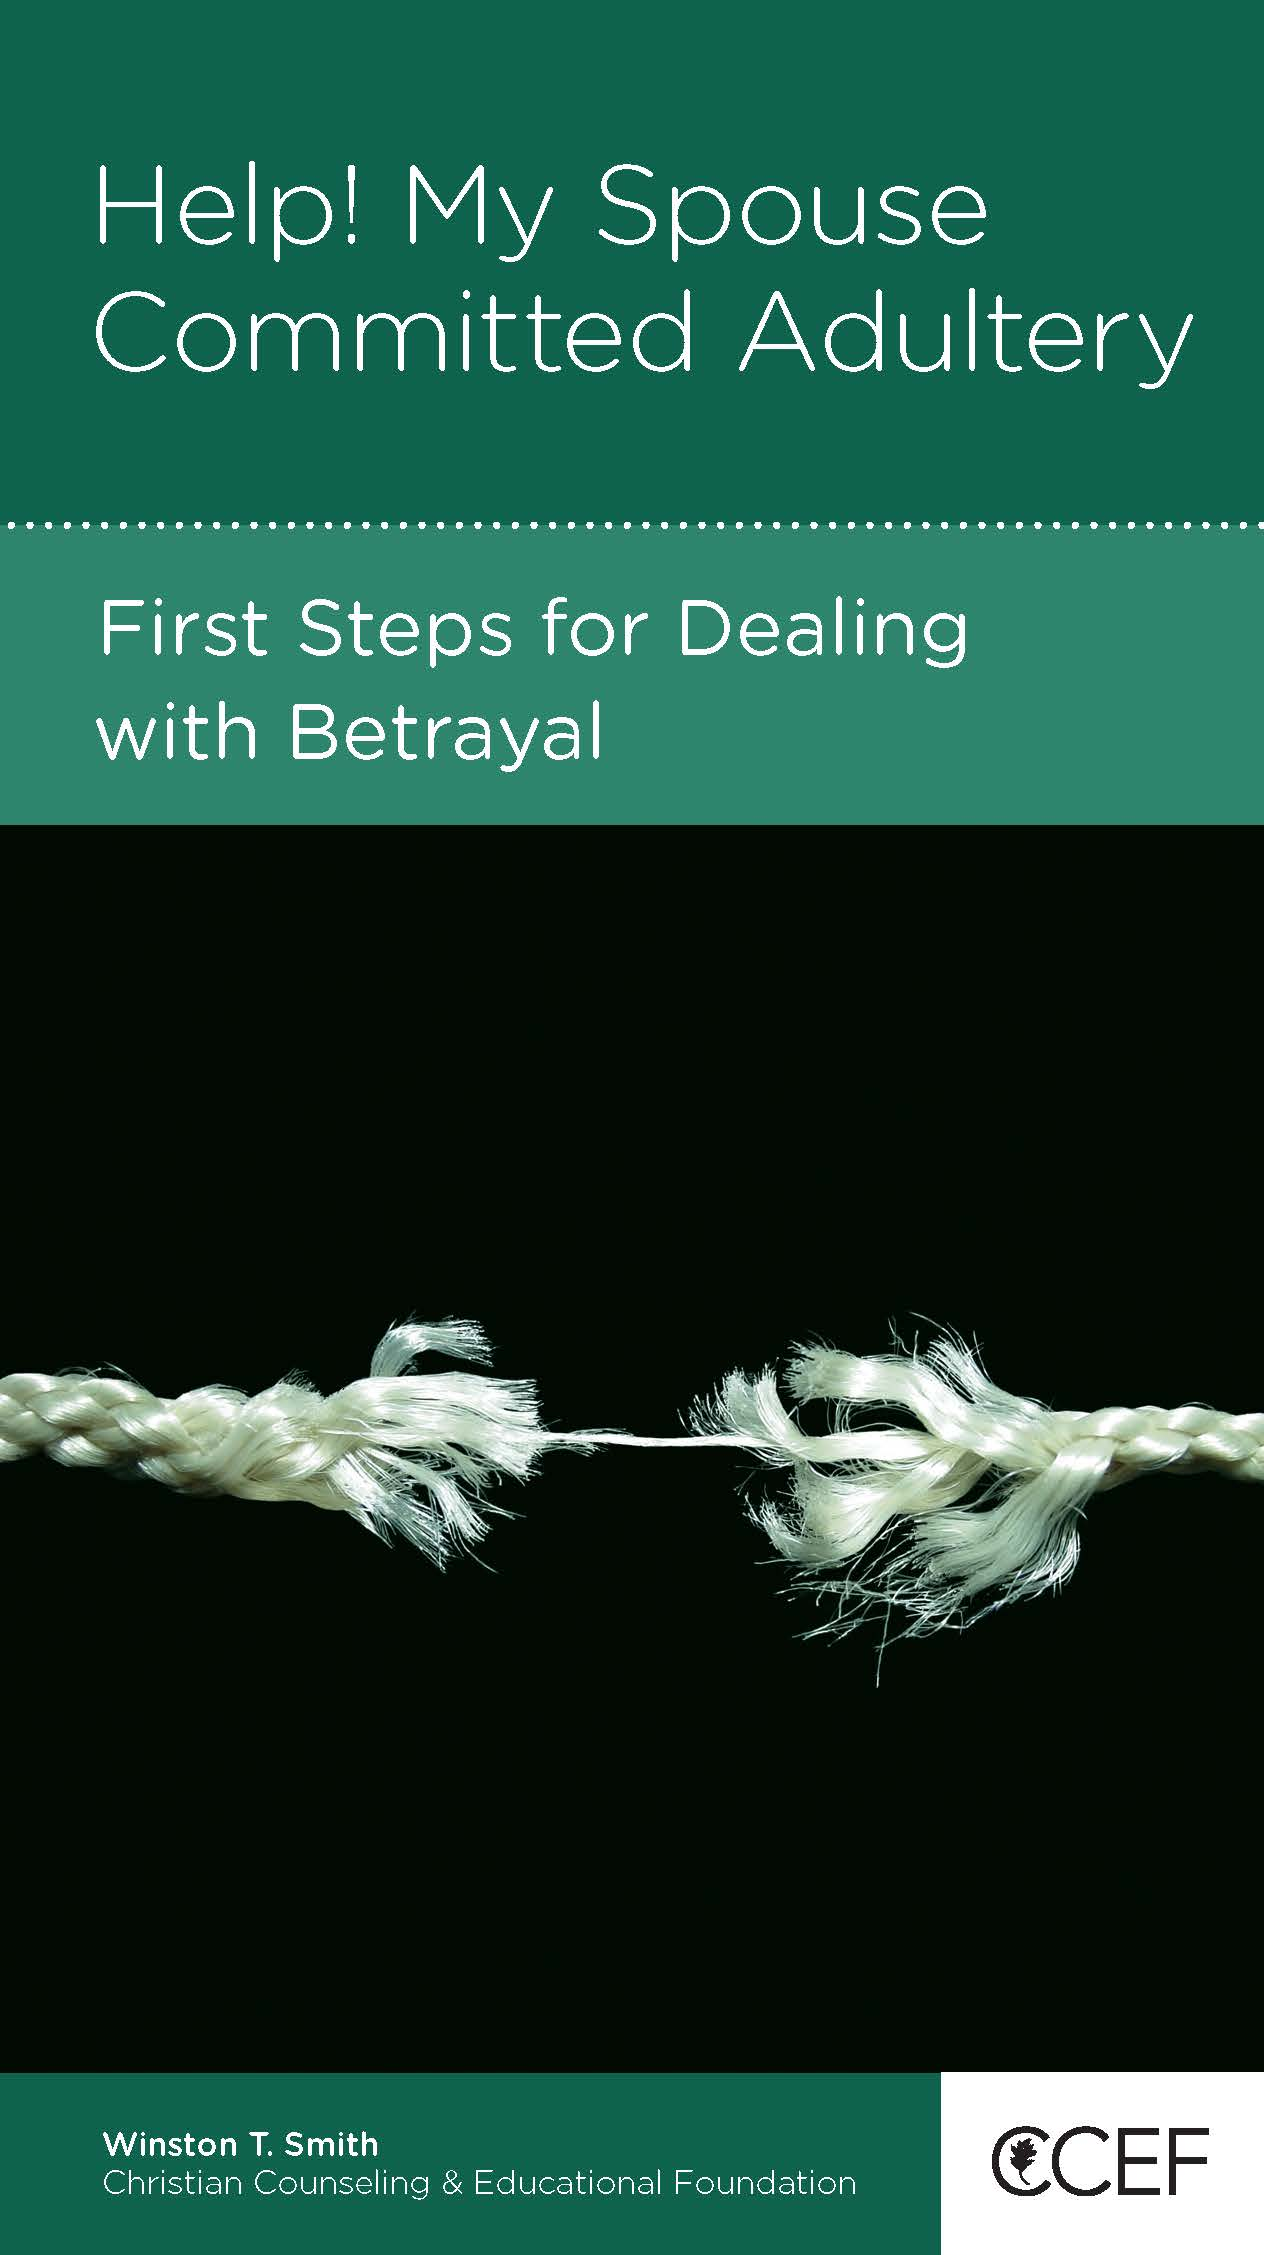 Help! My Spouse Committed Adultery: First Steps for Dealing